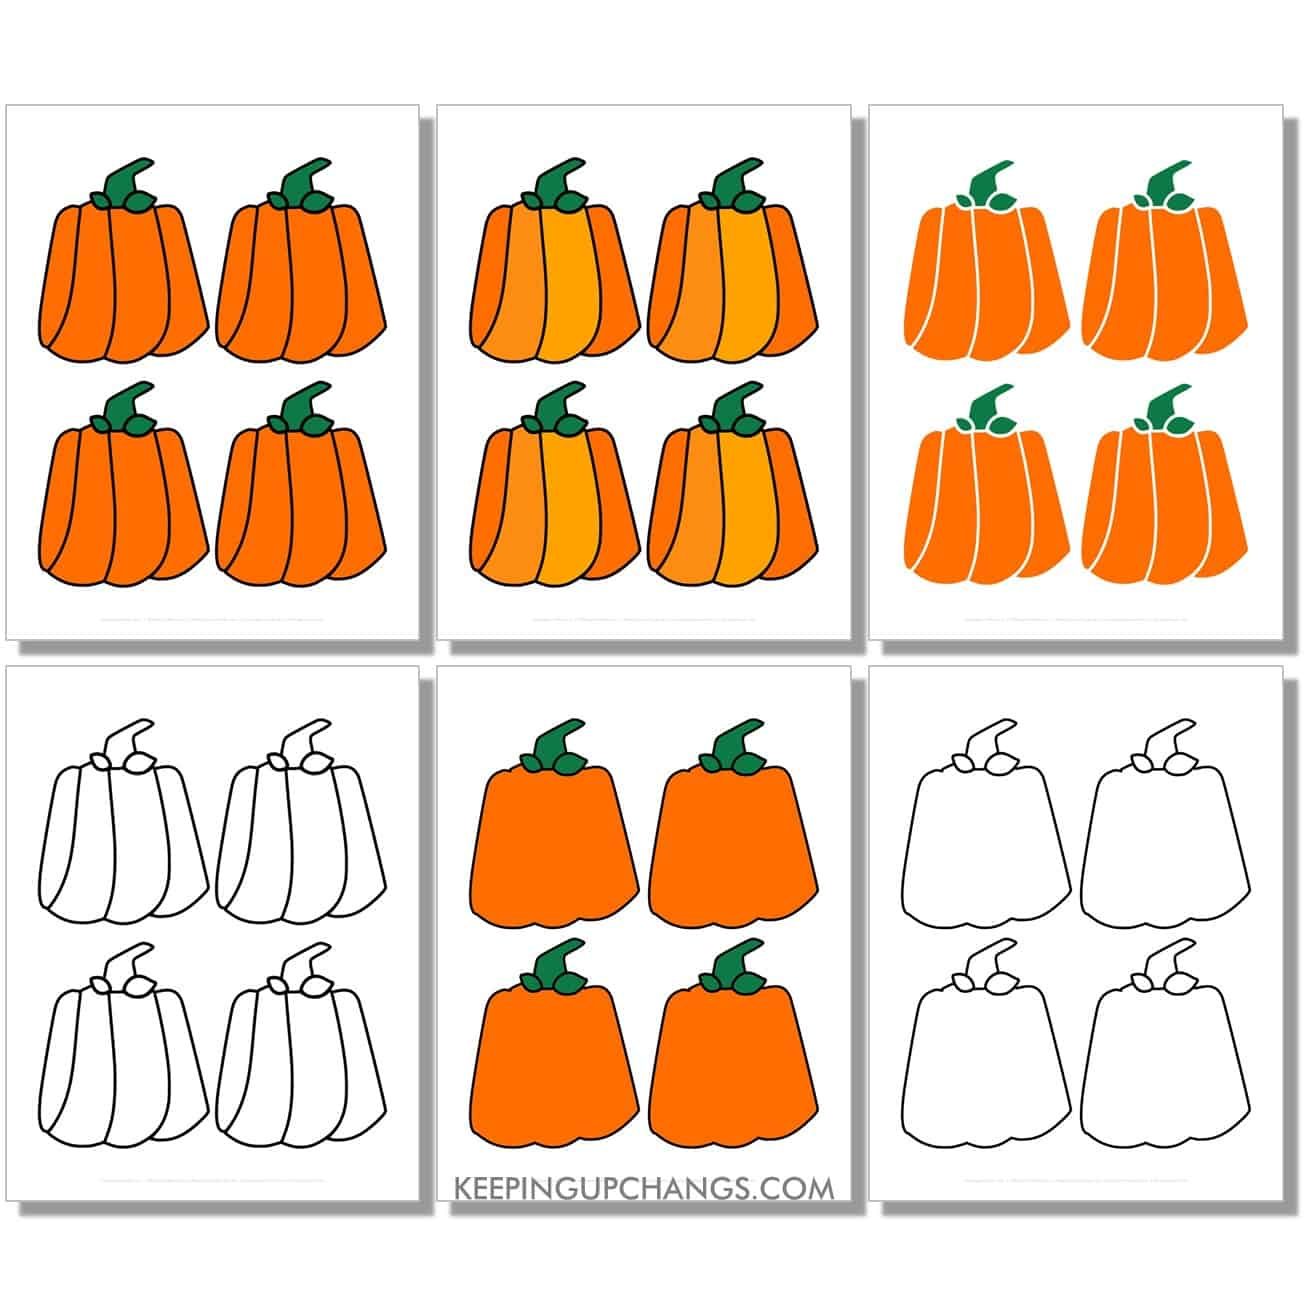 free small rectangle, square, box pumpkin in color, black and white, silhouette, 4 to a page.